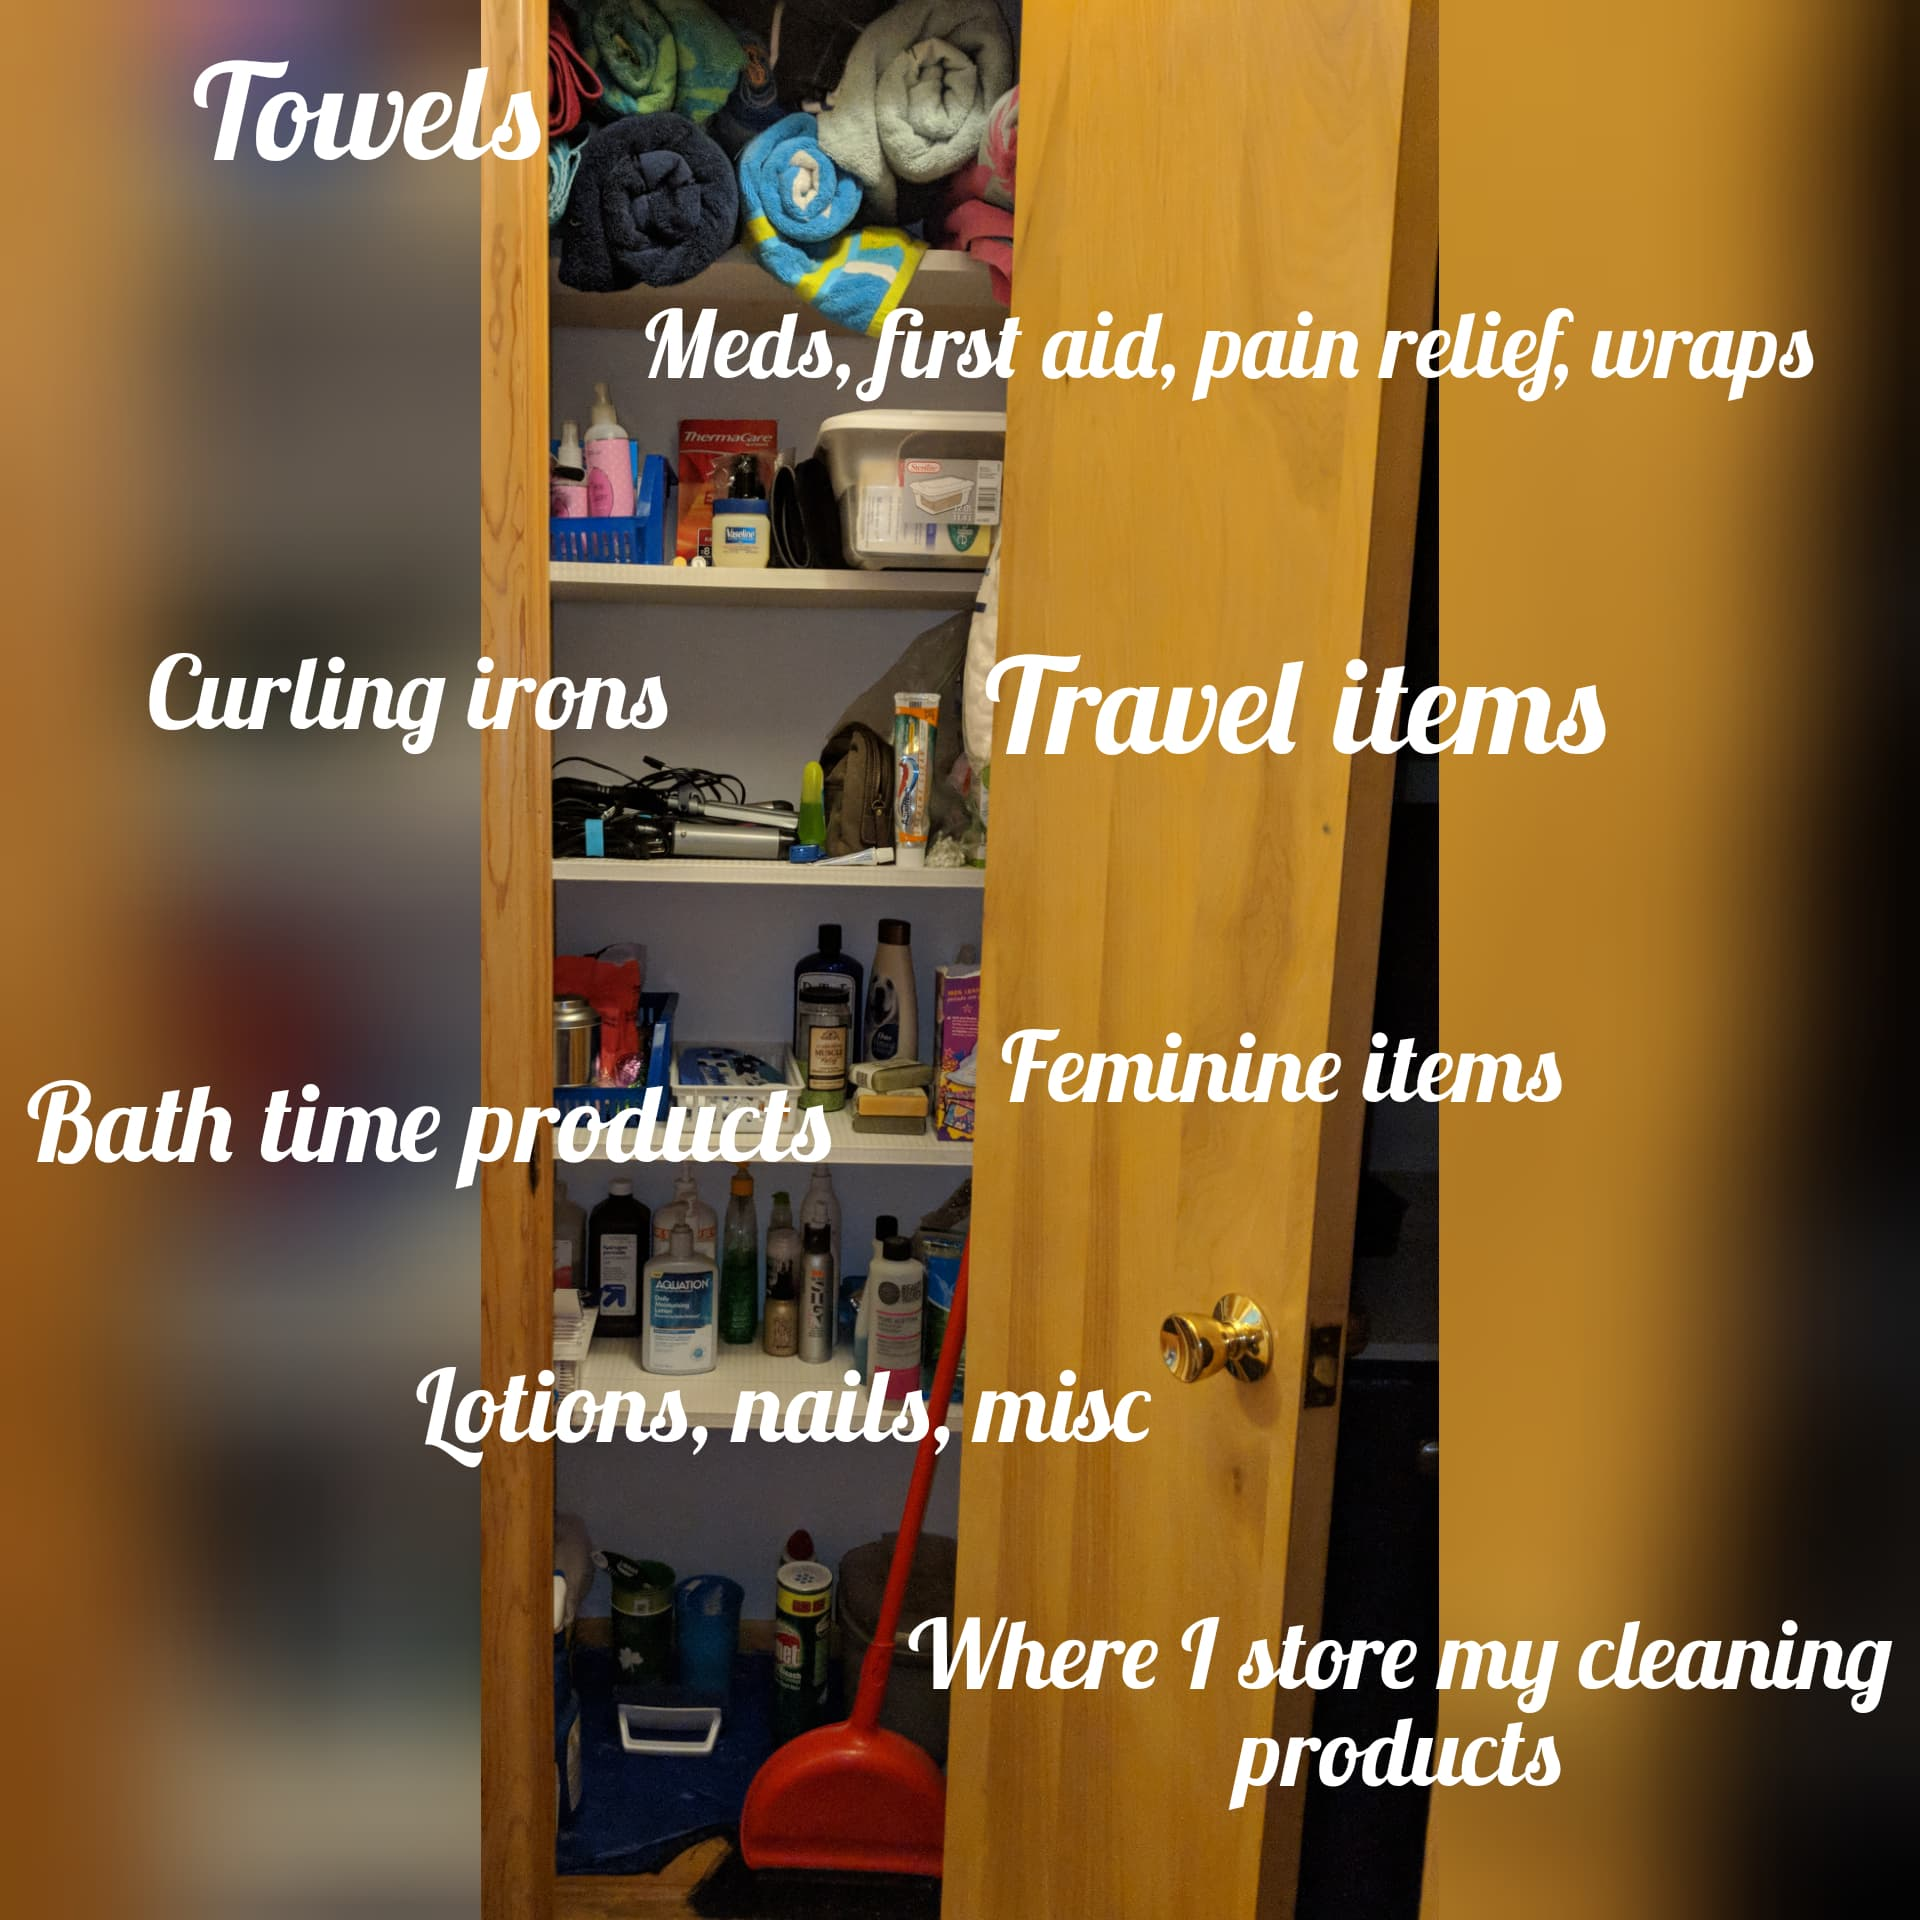 I store more items in here than I do in my bathroom cabinets, as these are items I don't use daily.